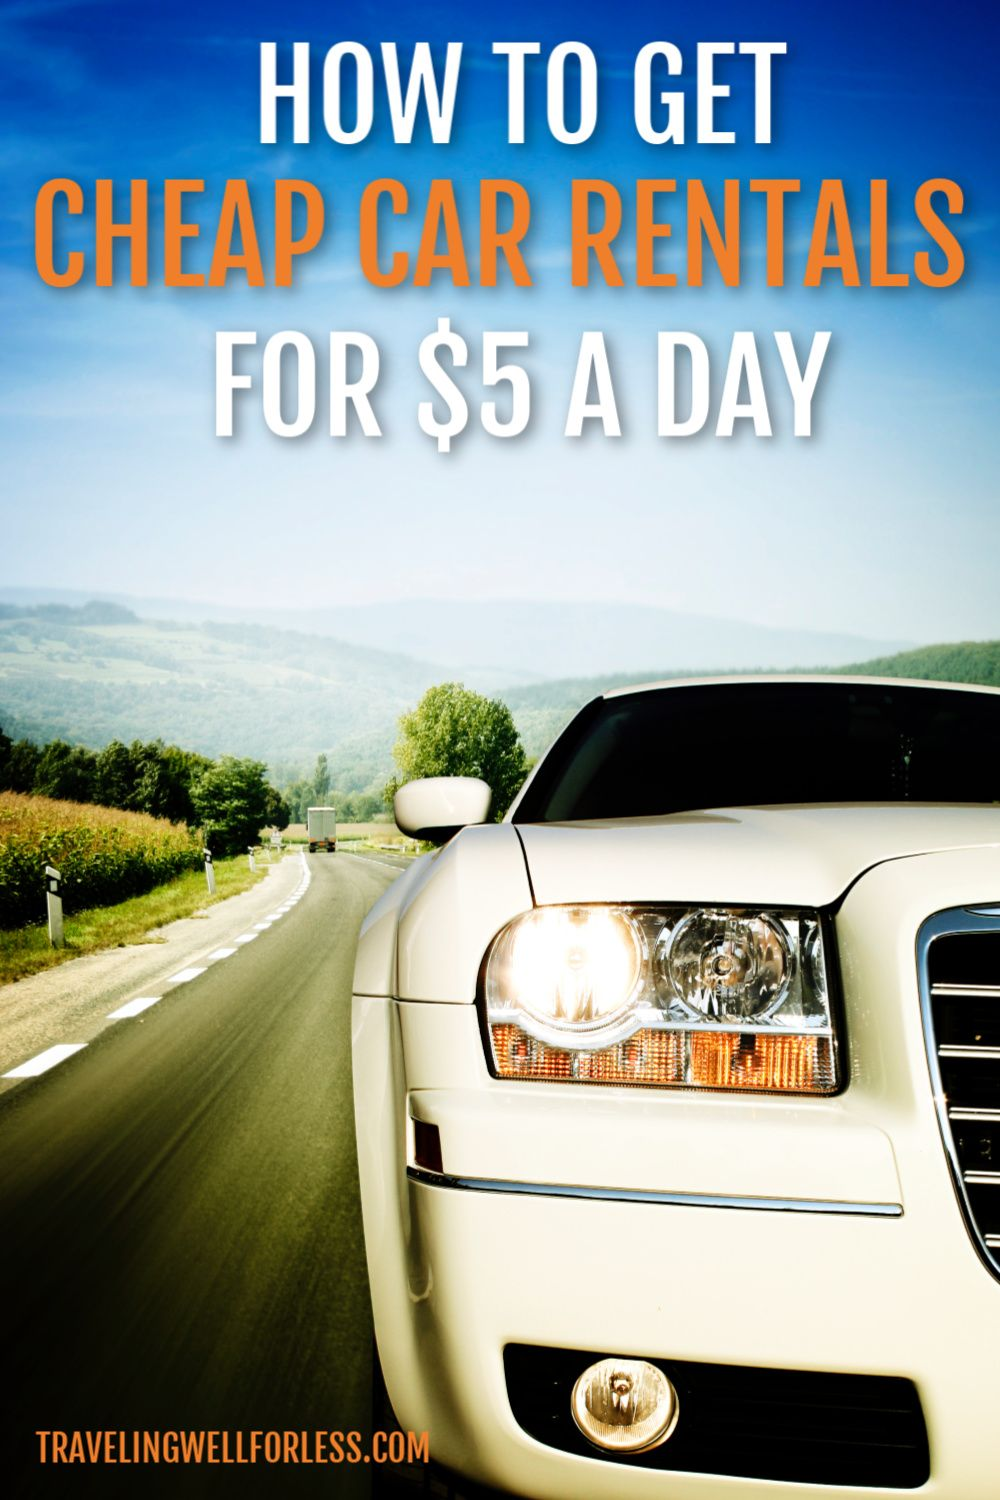 How To Get Cheap Car Rentals For 5 A Day In 2020 Cheap Car Rental Travel Tips Travel Deals